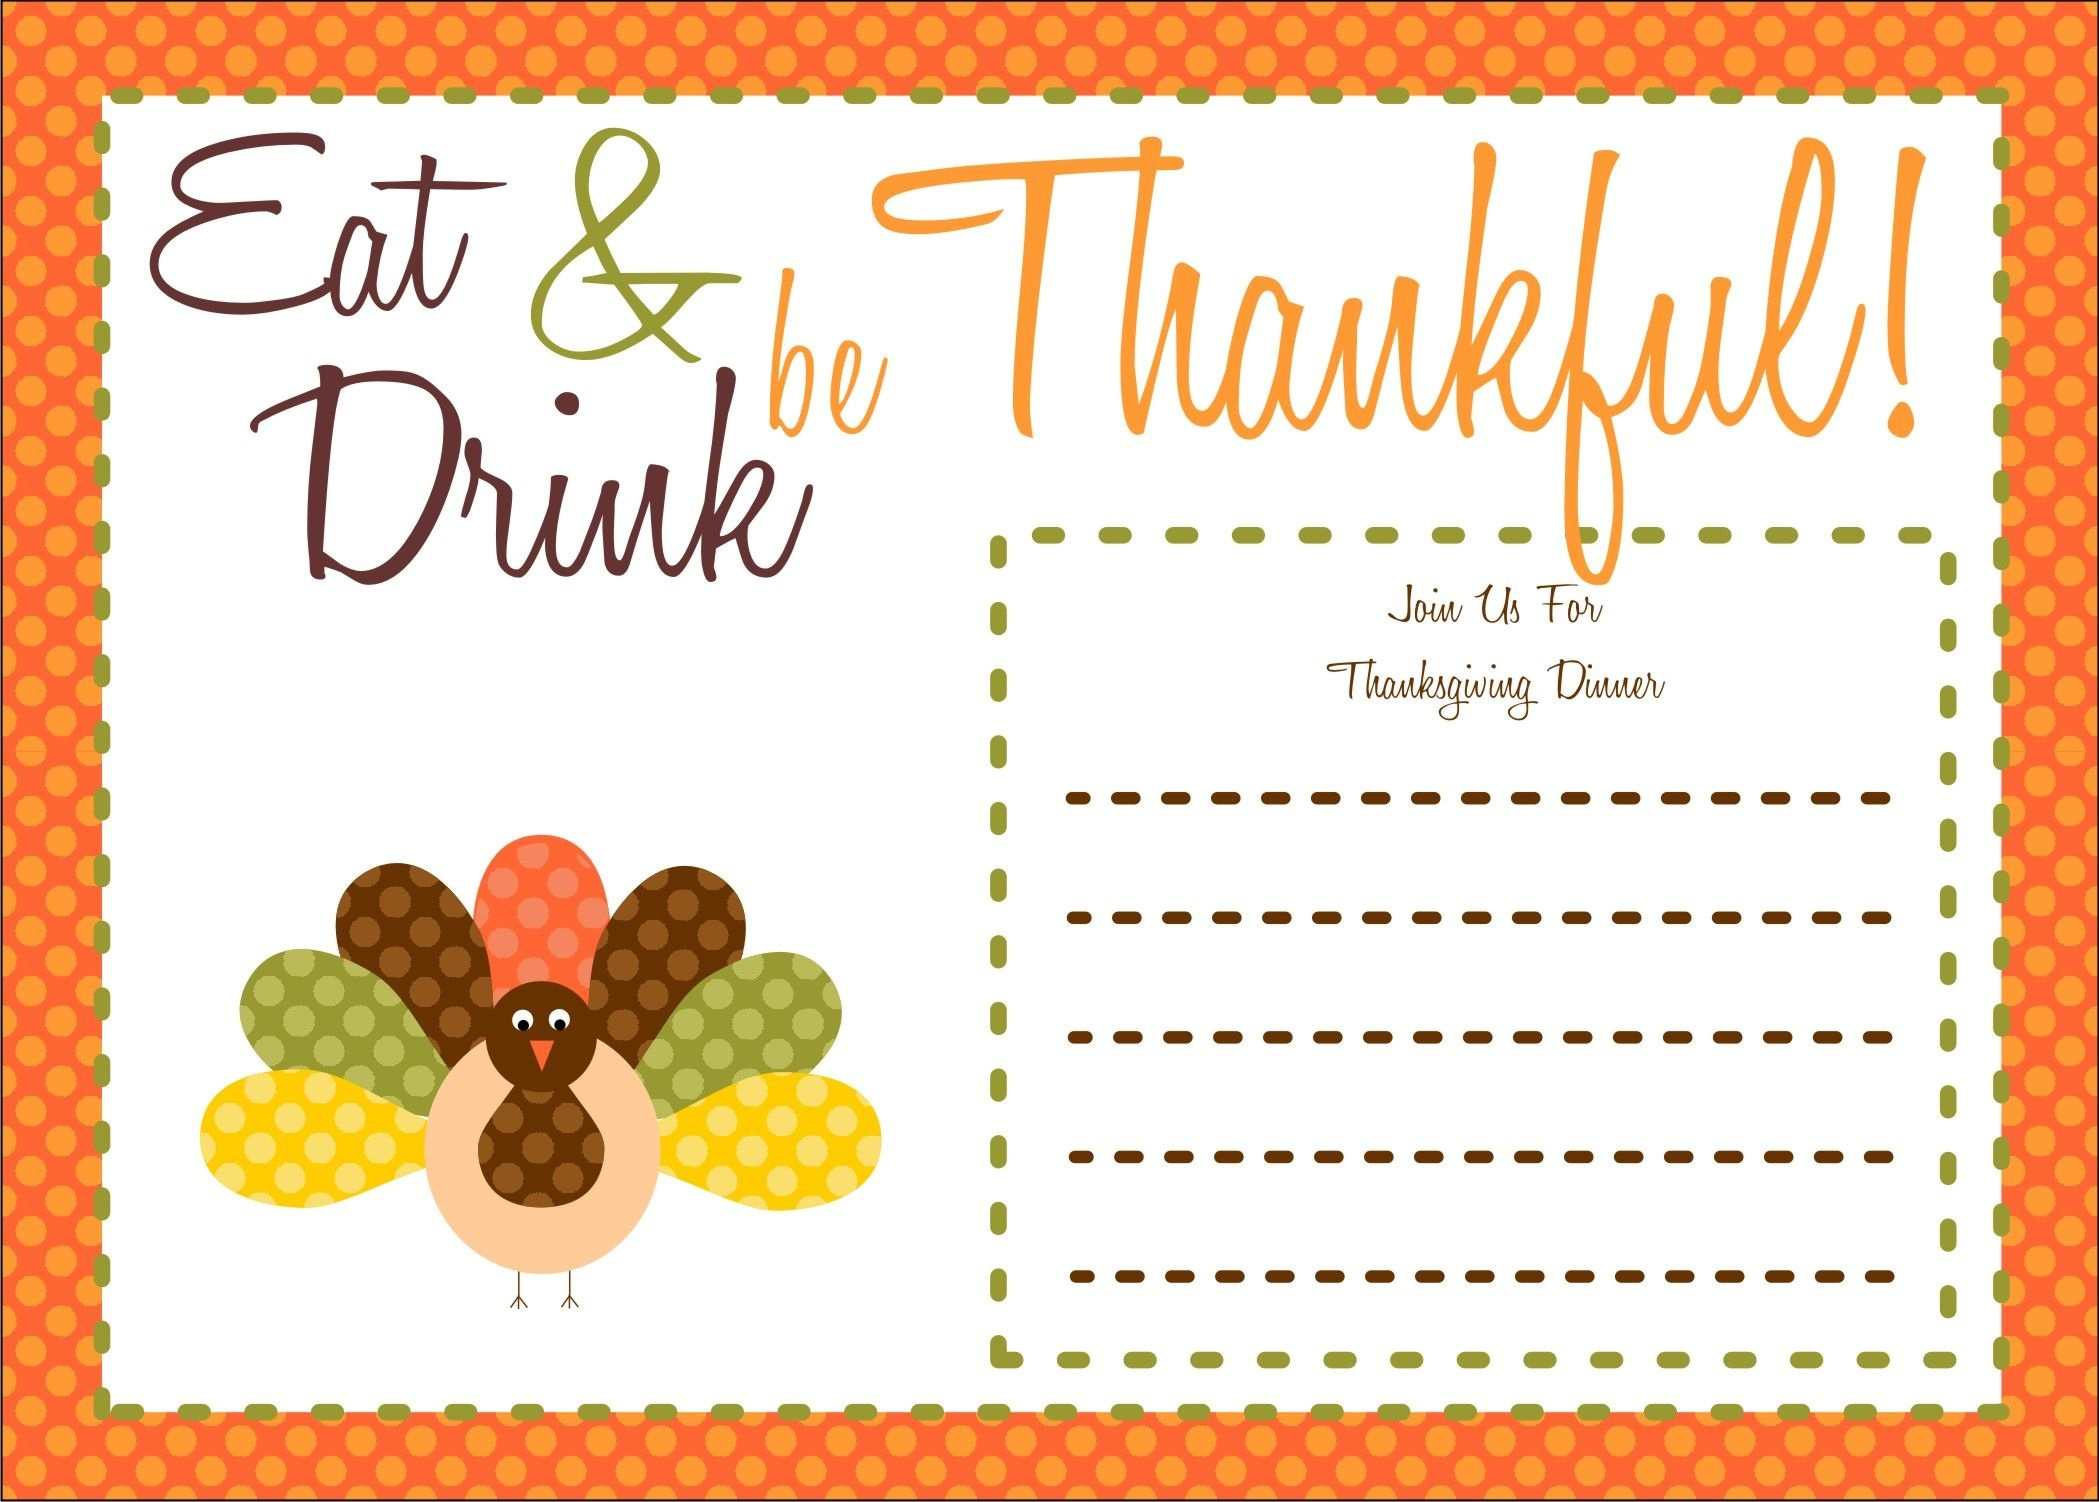 022 Free Thanksgiving Invitationteste Ideas Printable Of Postcard - Free Printable Thanksgiving Invitation Templates